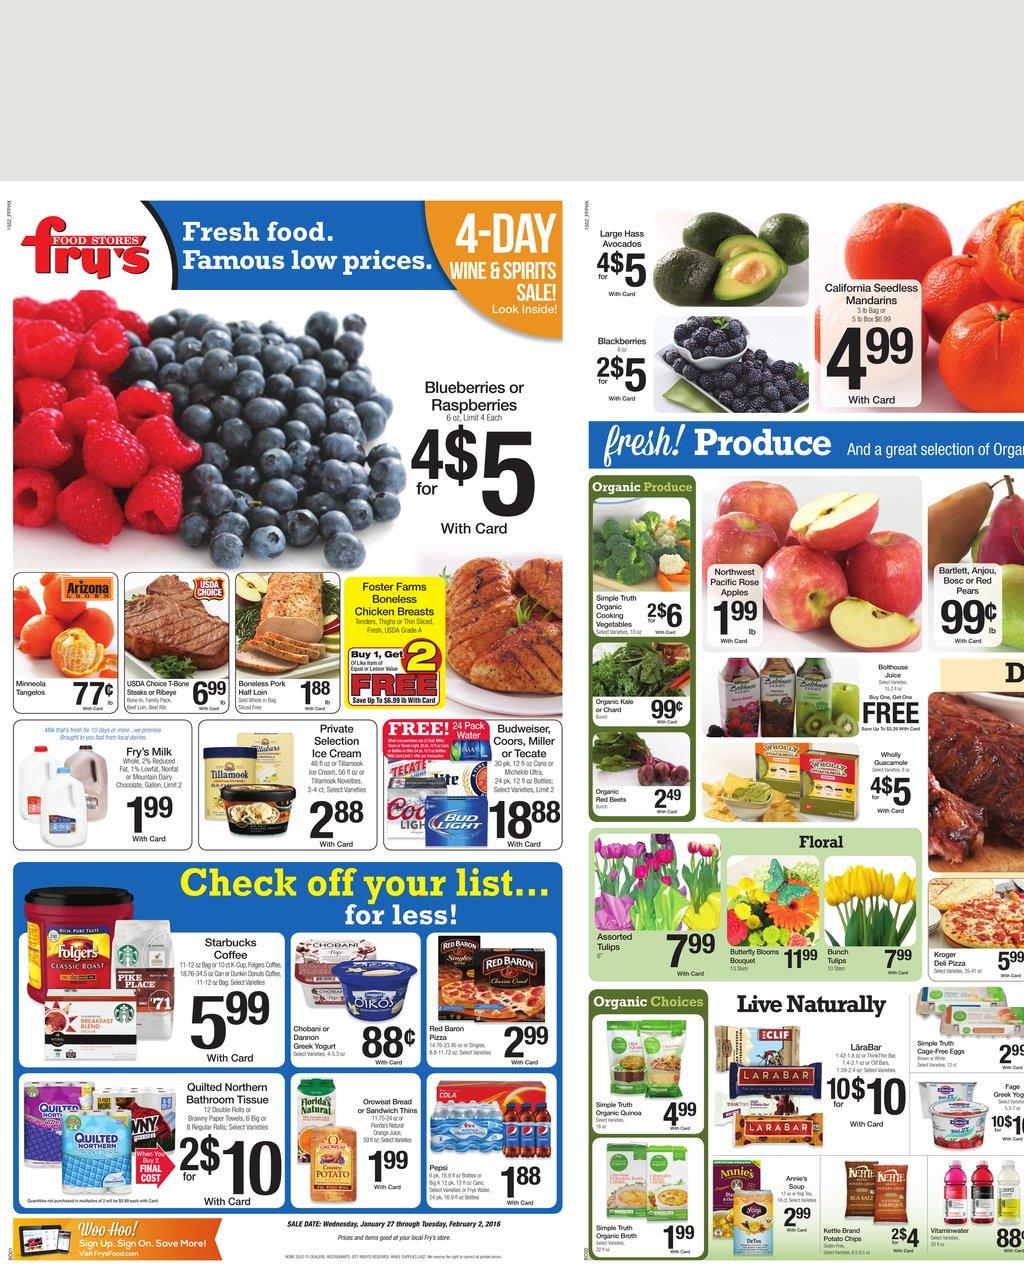 migom-zaim.ga prices good for online purchases only. In-store items and prices at Fry's retail locations may vary. Some online offers are subject to prior sale and may not be available.